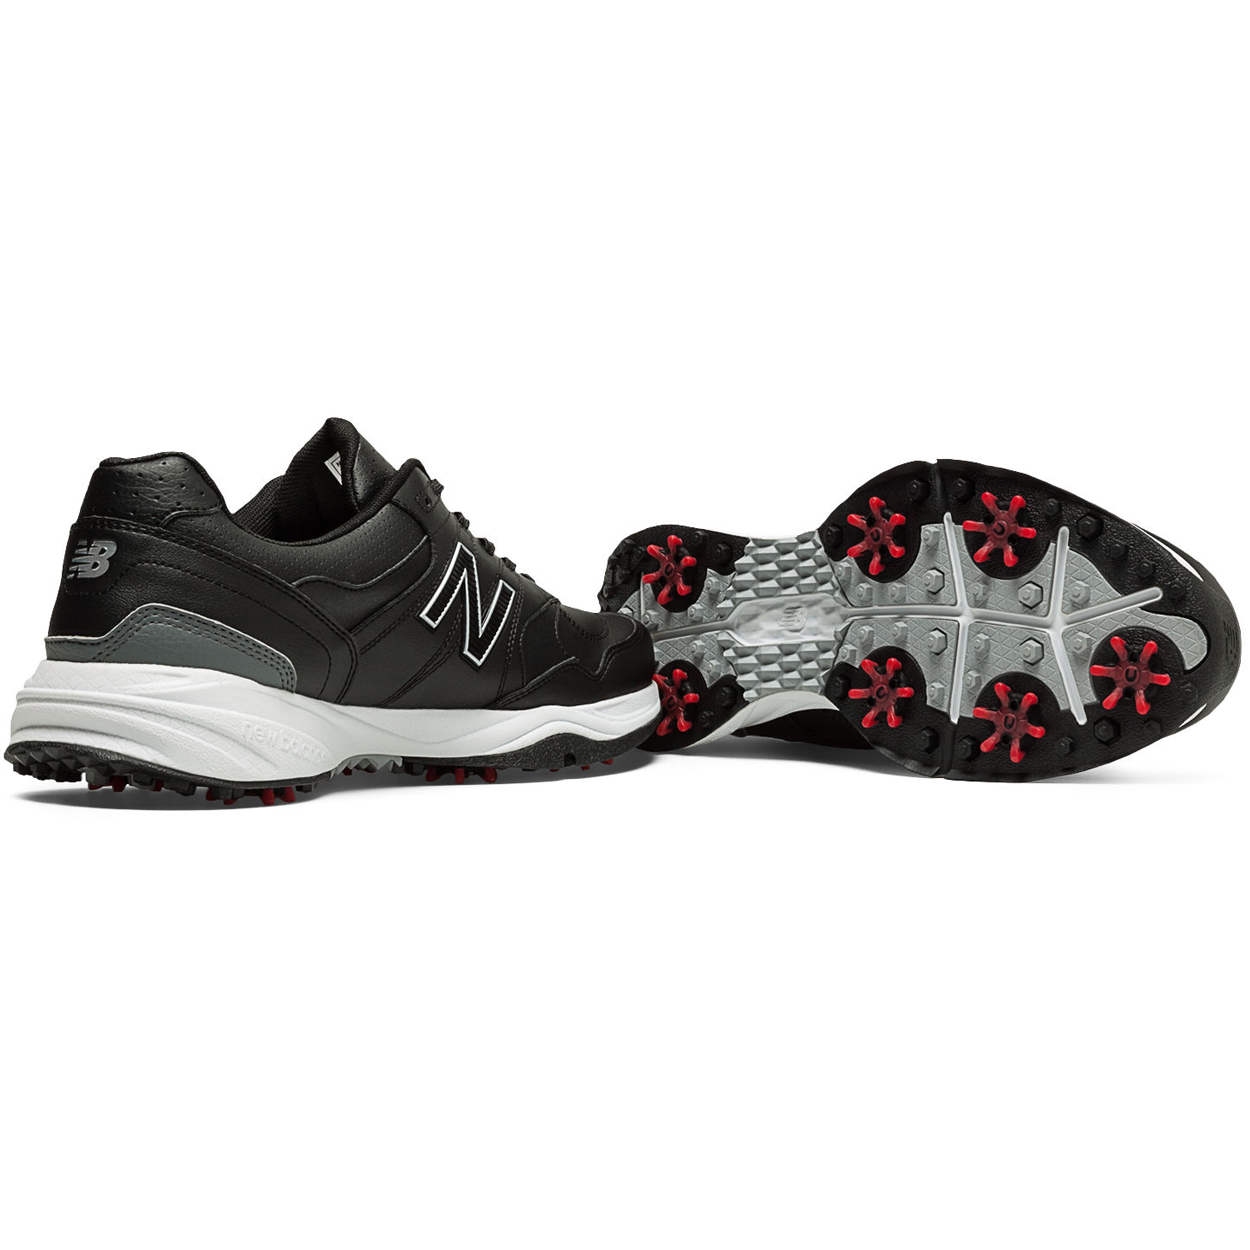 New-Balance-Men-039-s-1701-Golf-Shoe-Brand-New thumbnail 5